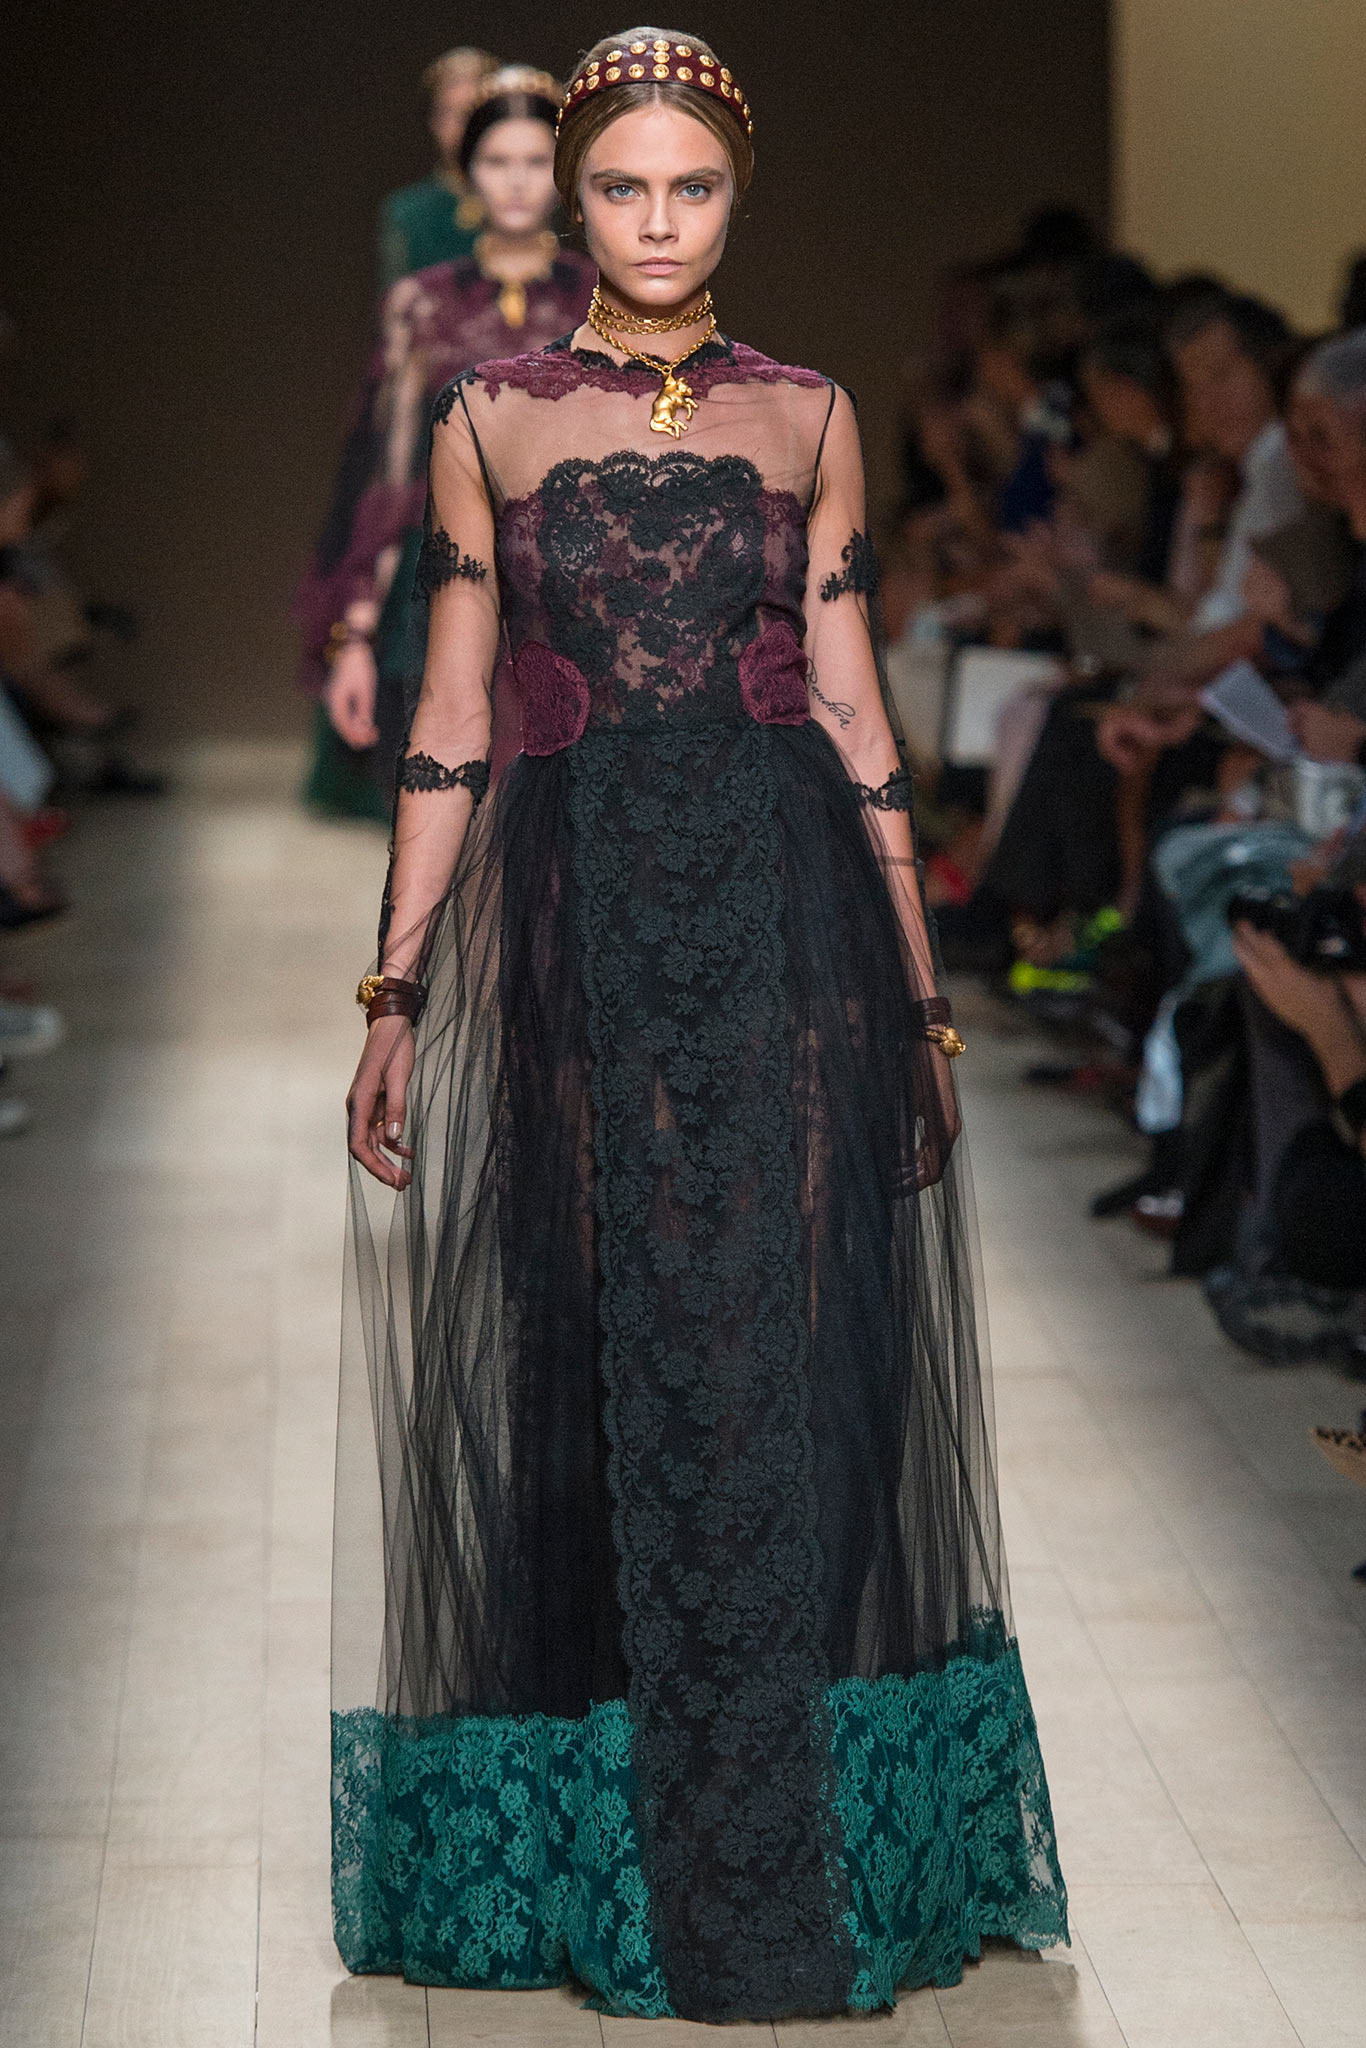 Valentino Spring 2013 Couture Show: 10 Oscar-Worthy Gowns